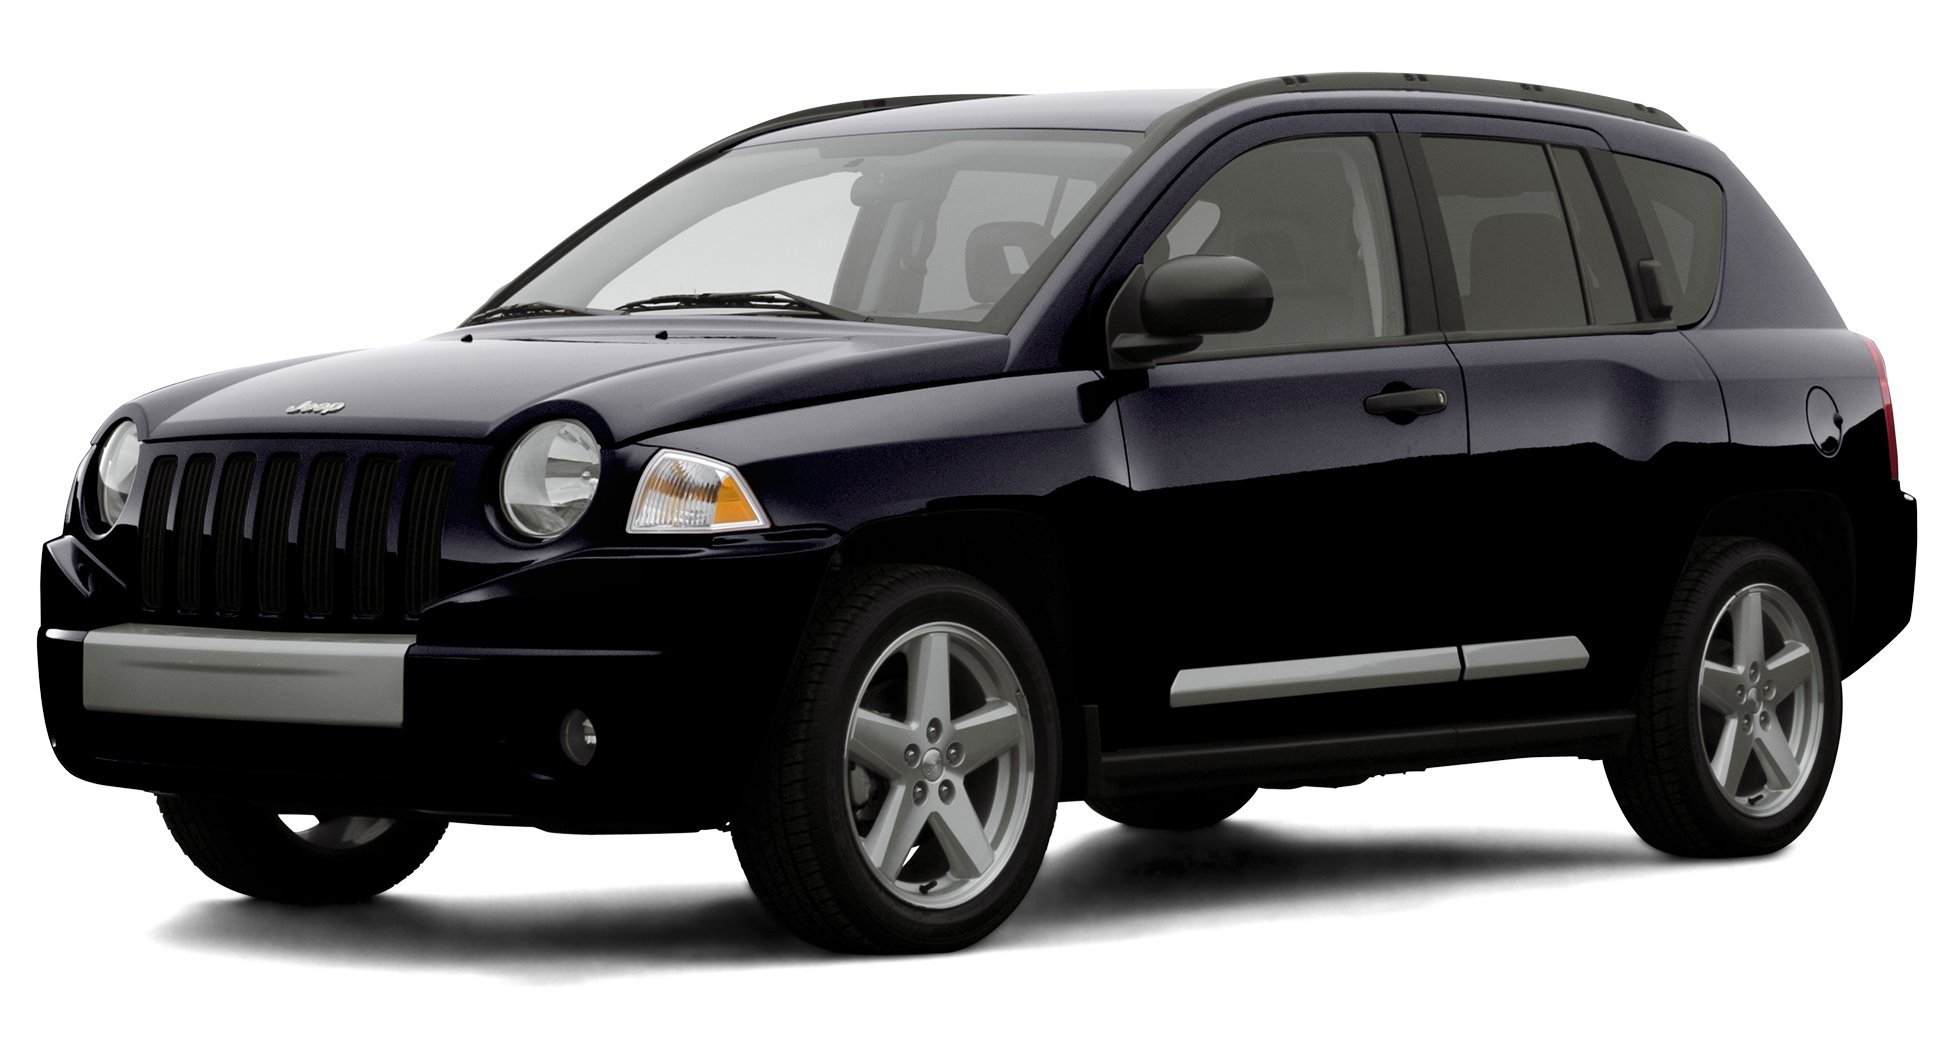 2007 jeep compass reviews images and specs vehicles. Black Bedroom Furniture Sets. Home Design Ideas